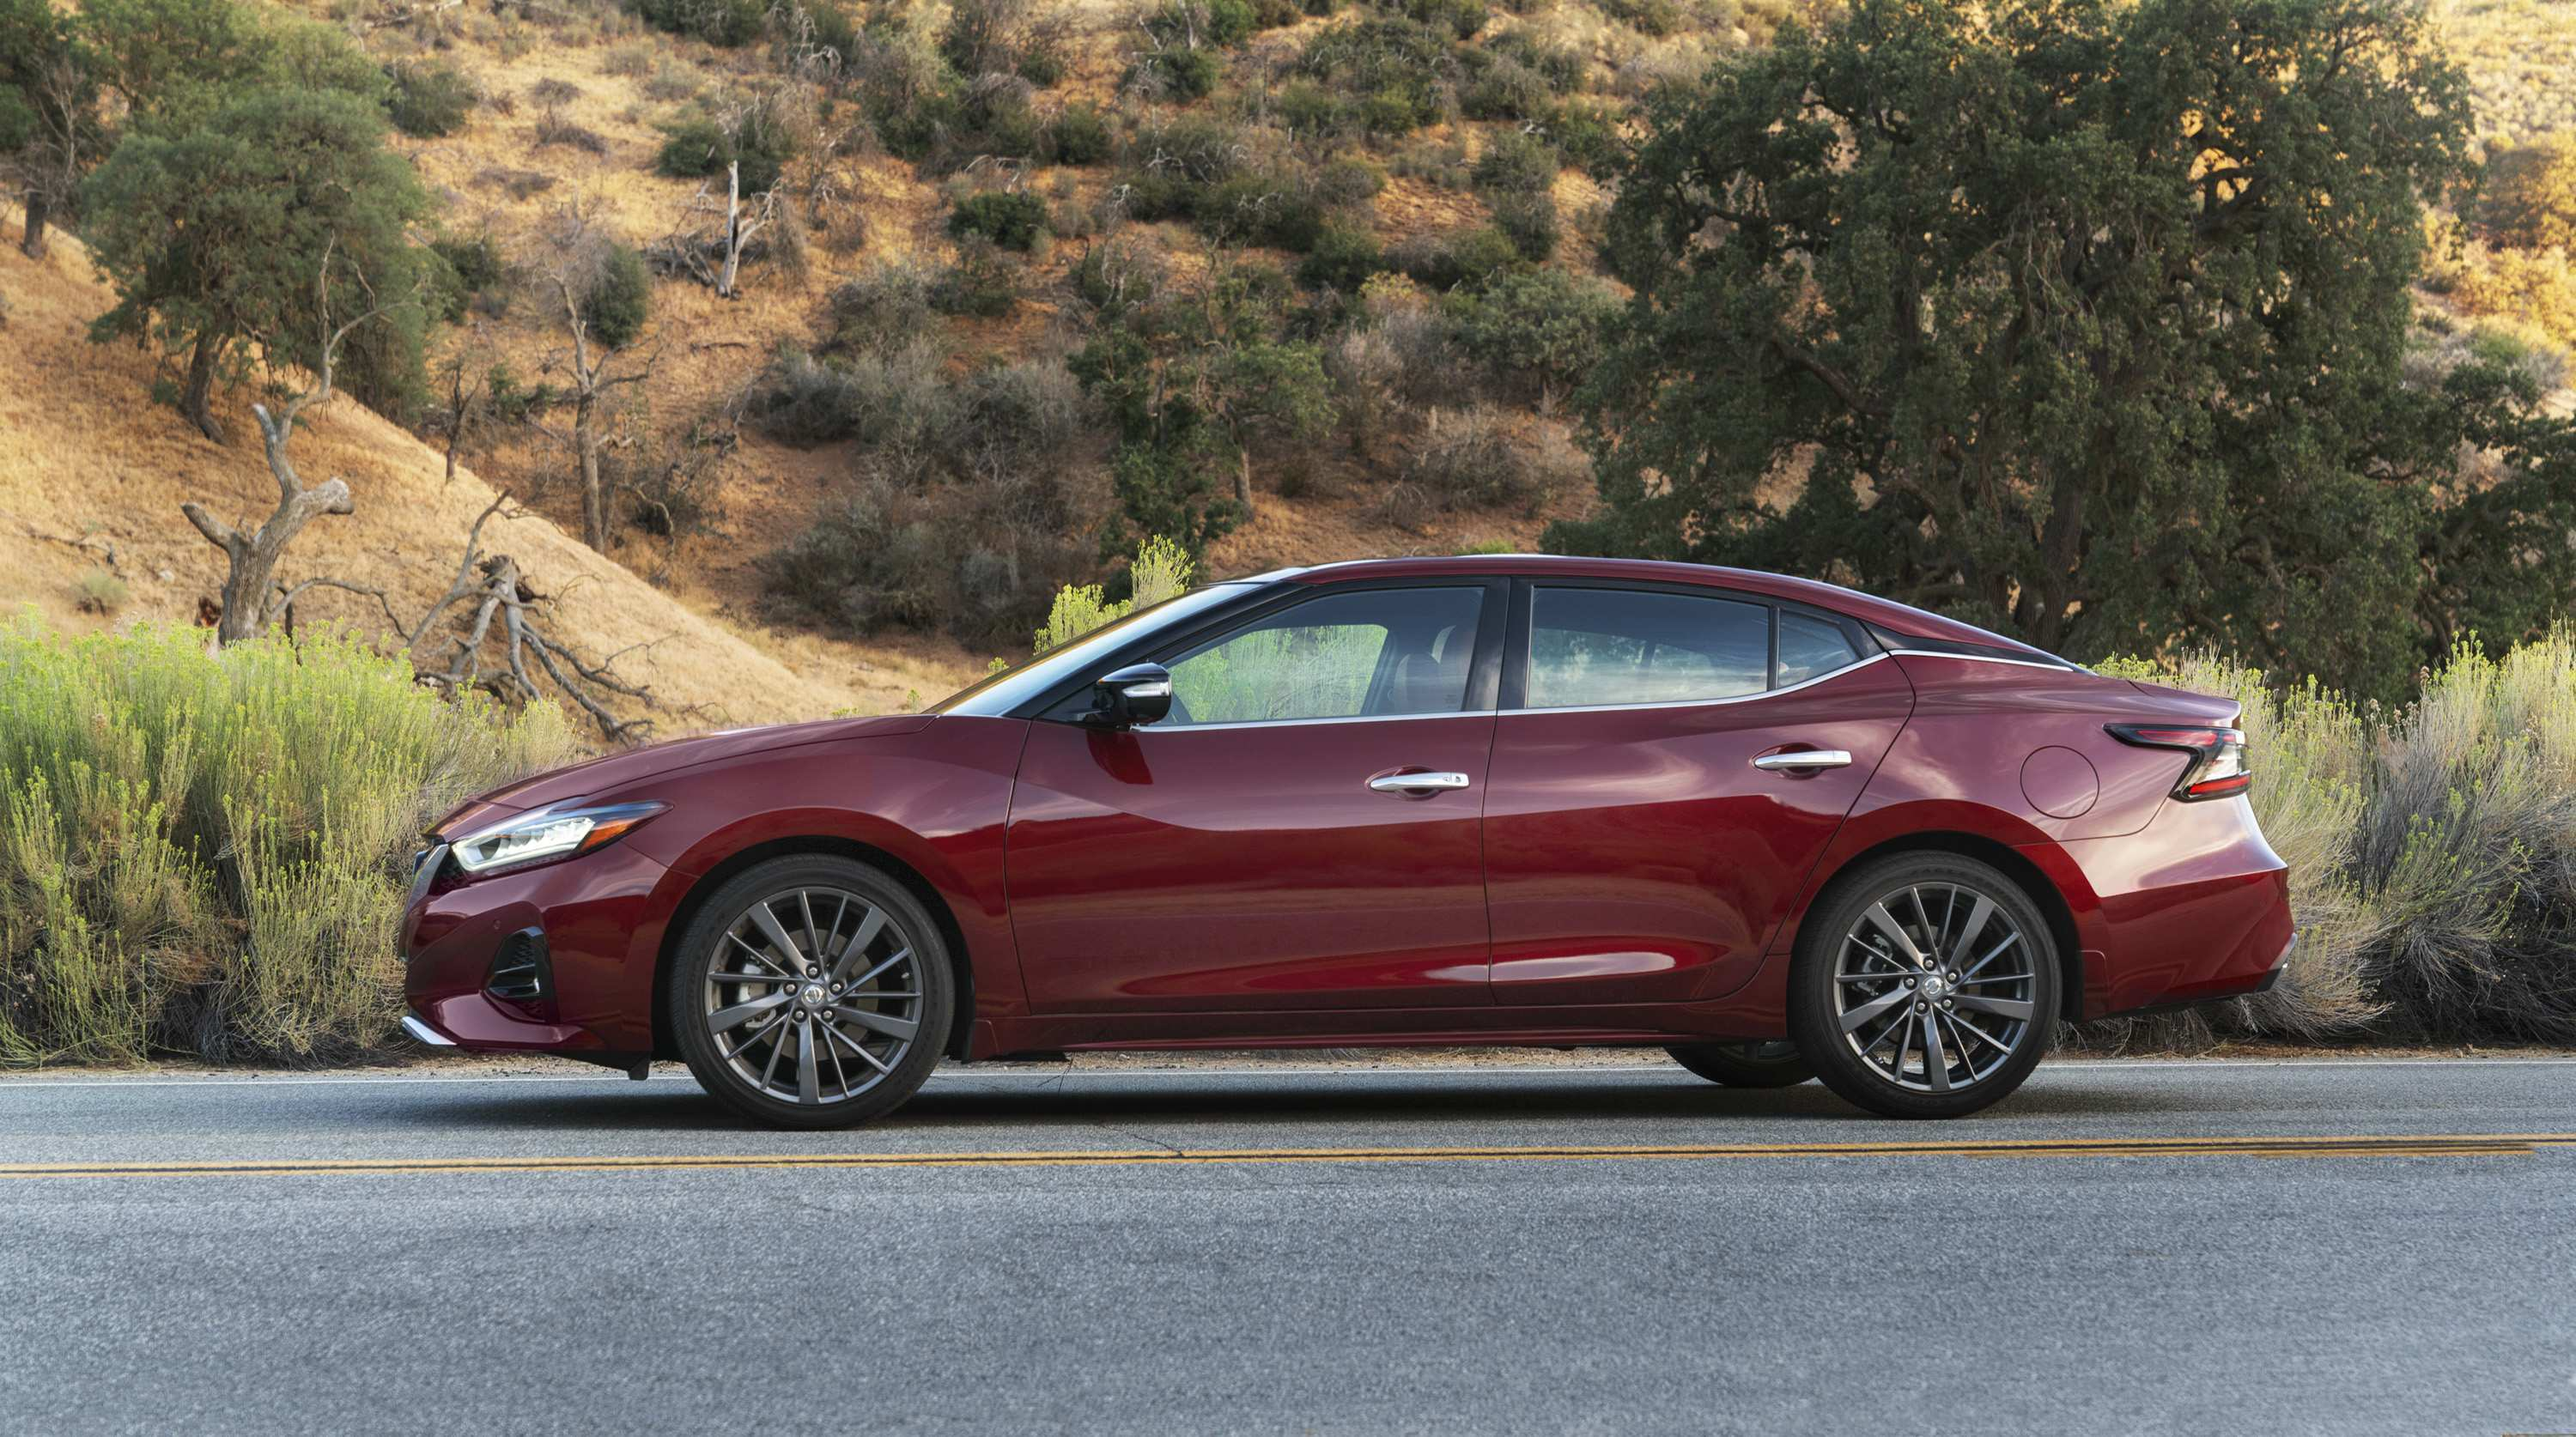 85 Great 2019 Nissan Maxima Reviews with 2019 Nissan Maxima